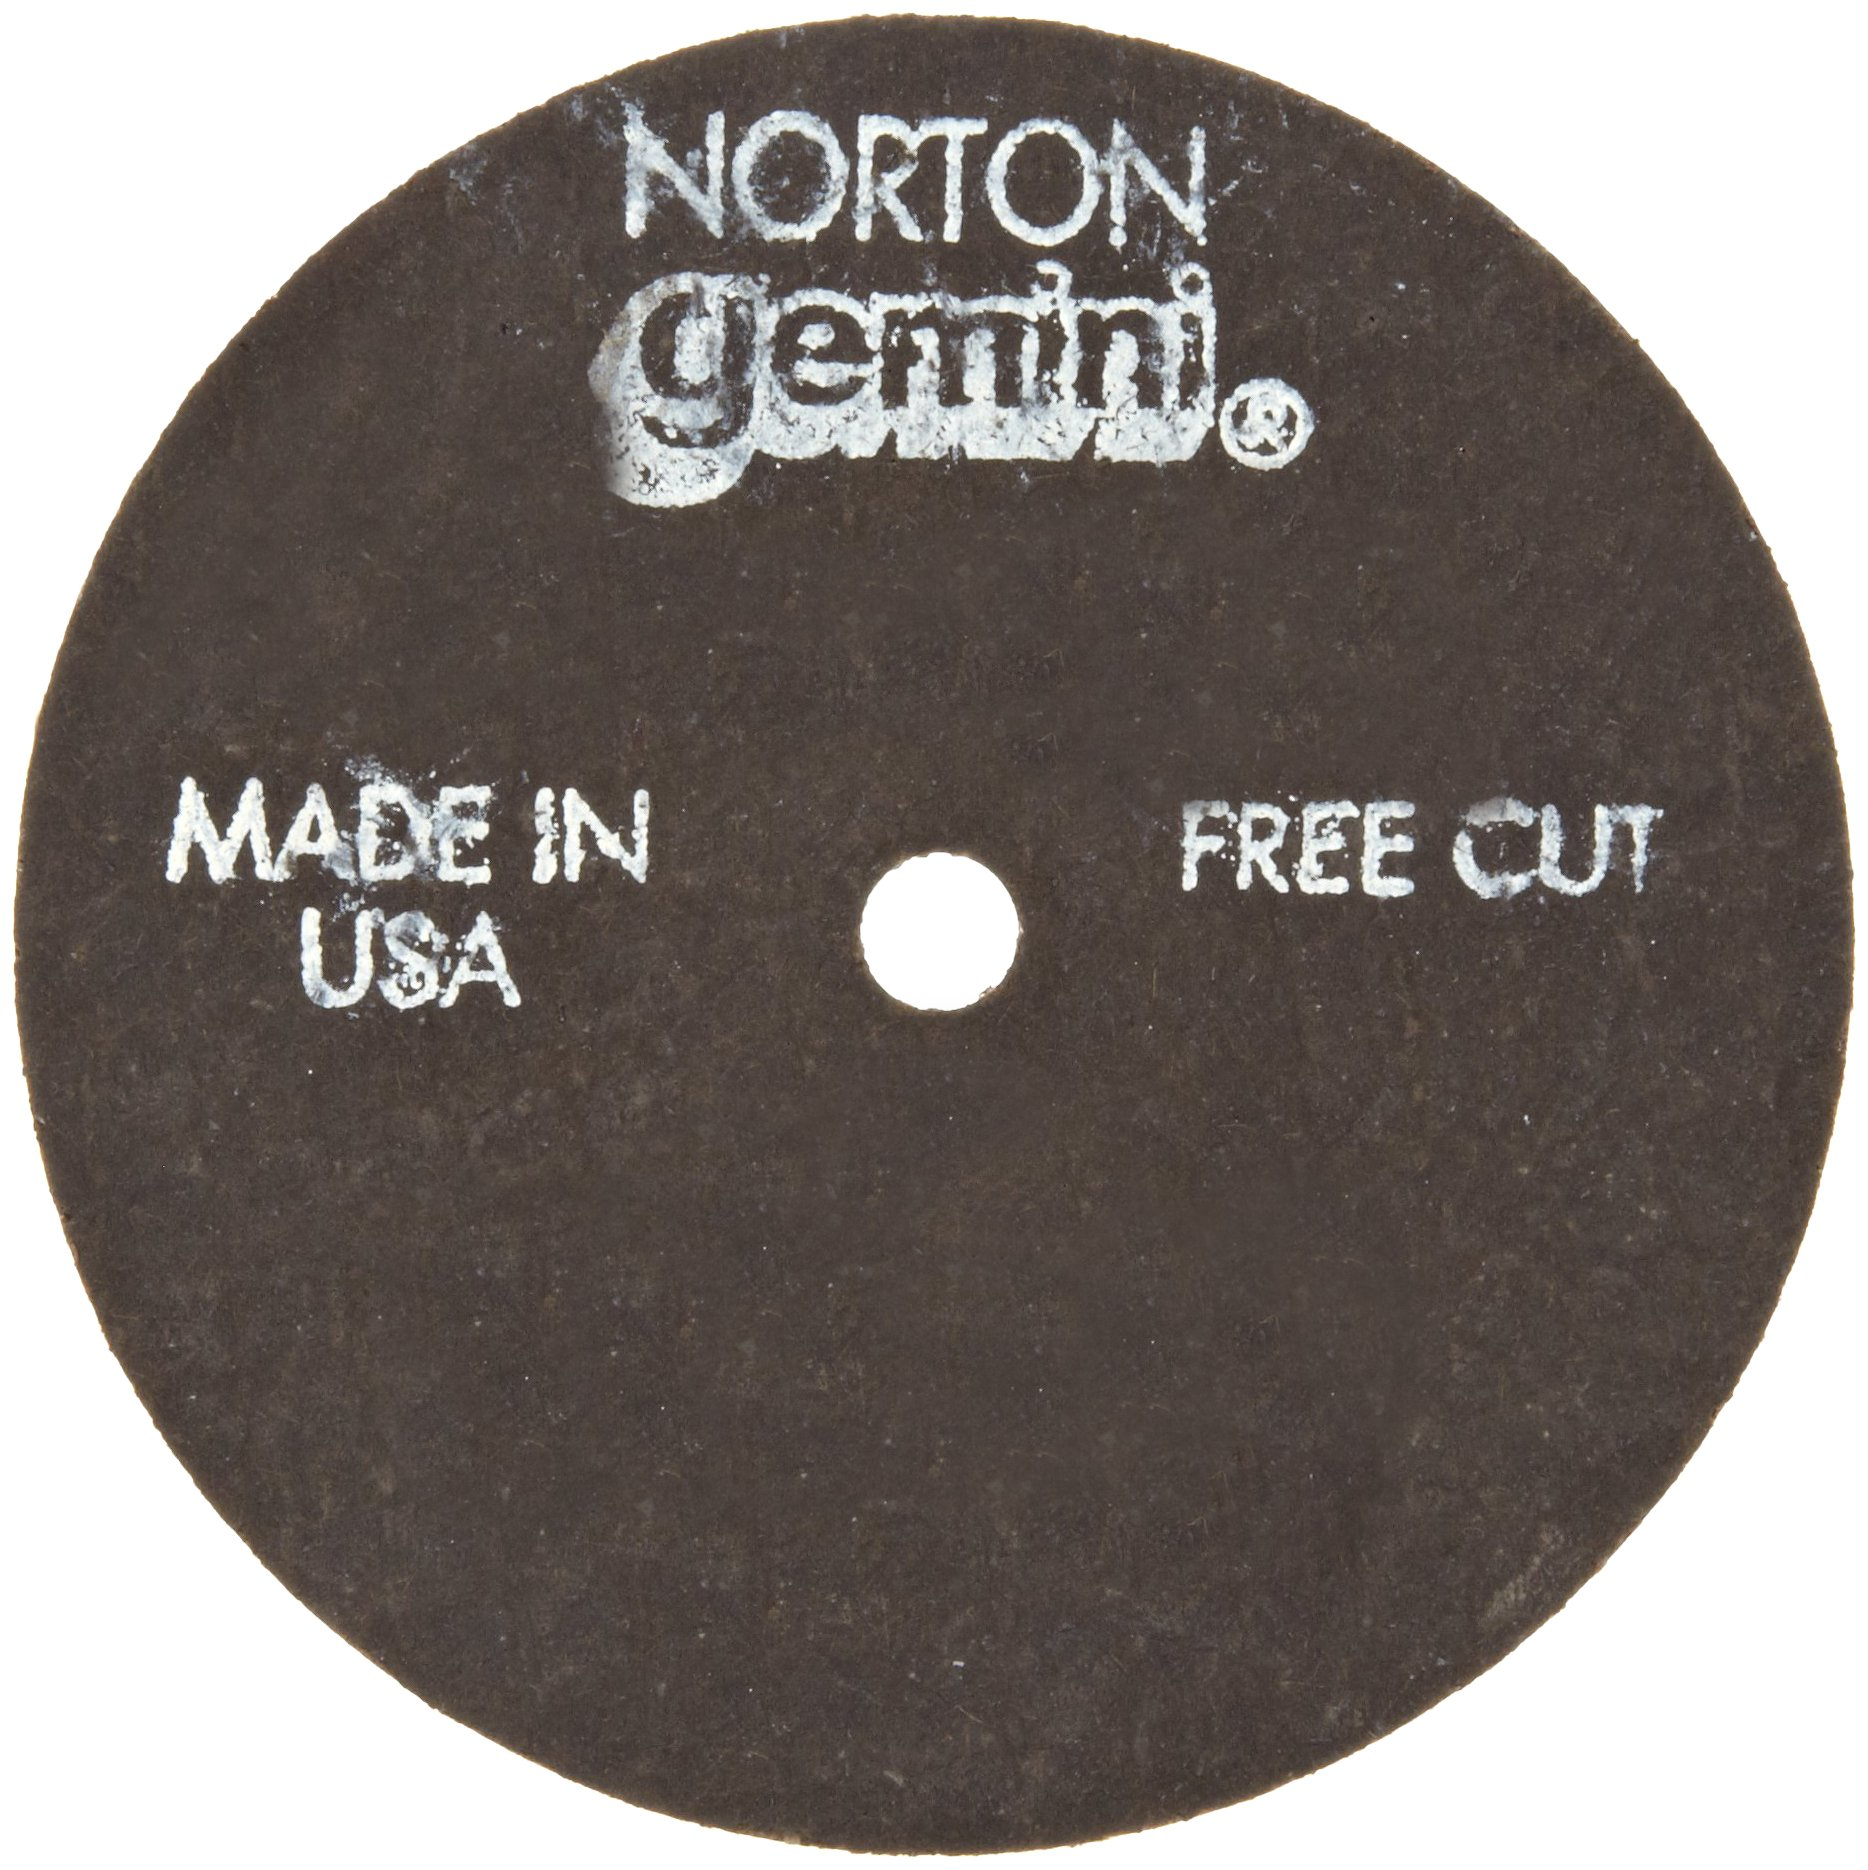 Norton Gemini Fast Cut Small Diameter Reinforced Abrasive Flat Cut-off Wheel, Type 01, Aluminum Oxide, 3/8'' Arbor, 4'' Diameter x 0.35'' Thickness  (Pack of 25)